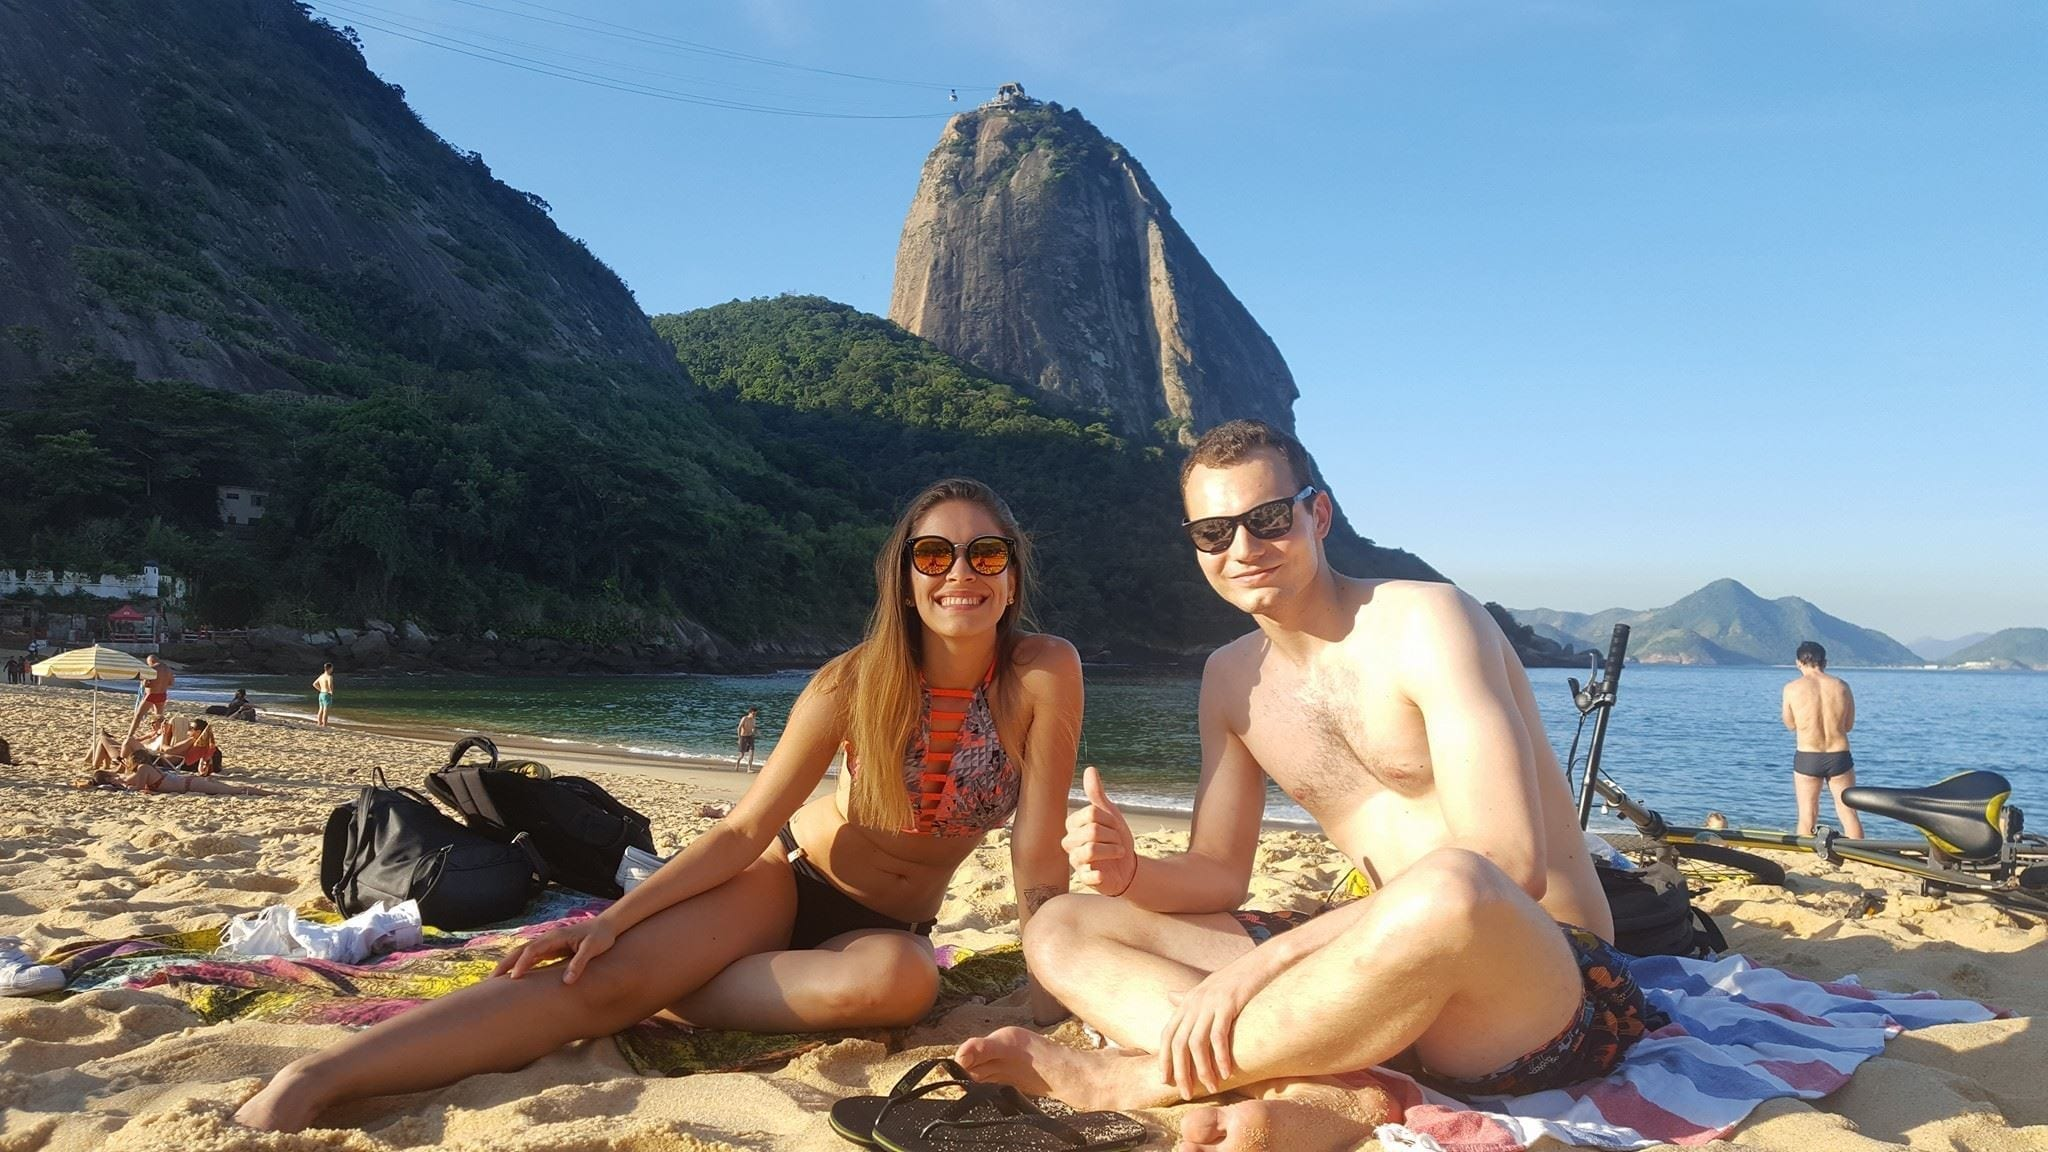 Winter is Hot in Rio. Enjoying the sun at Praia Vermelha.